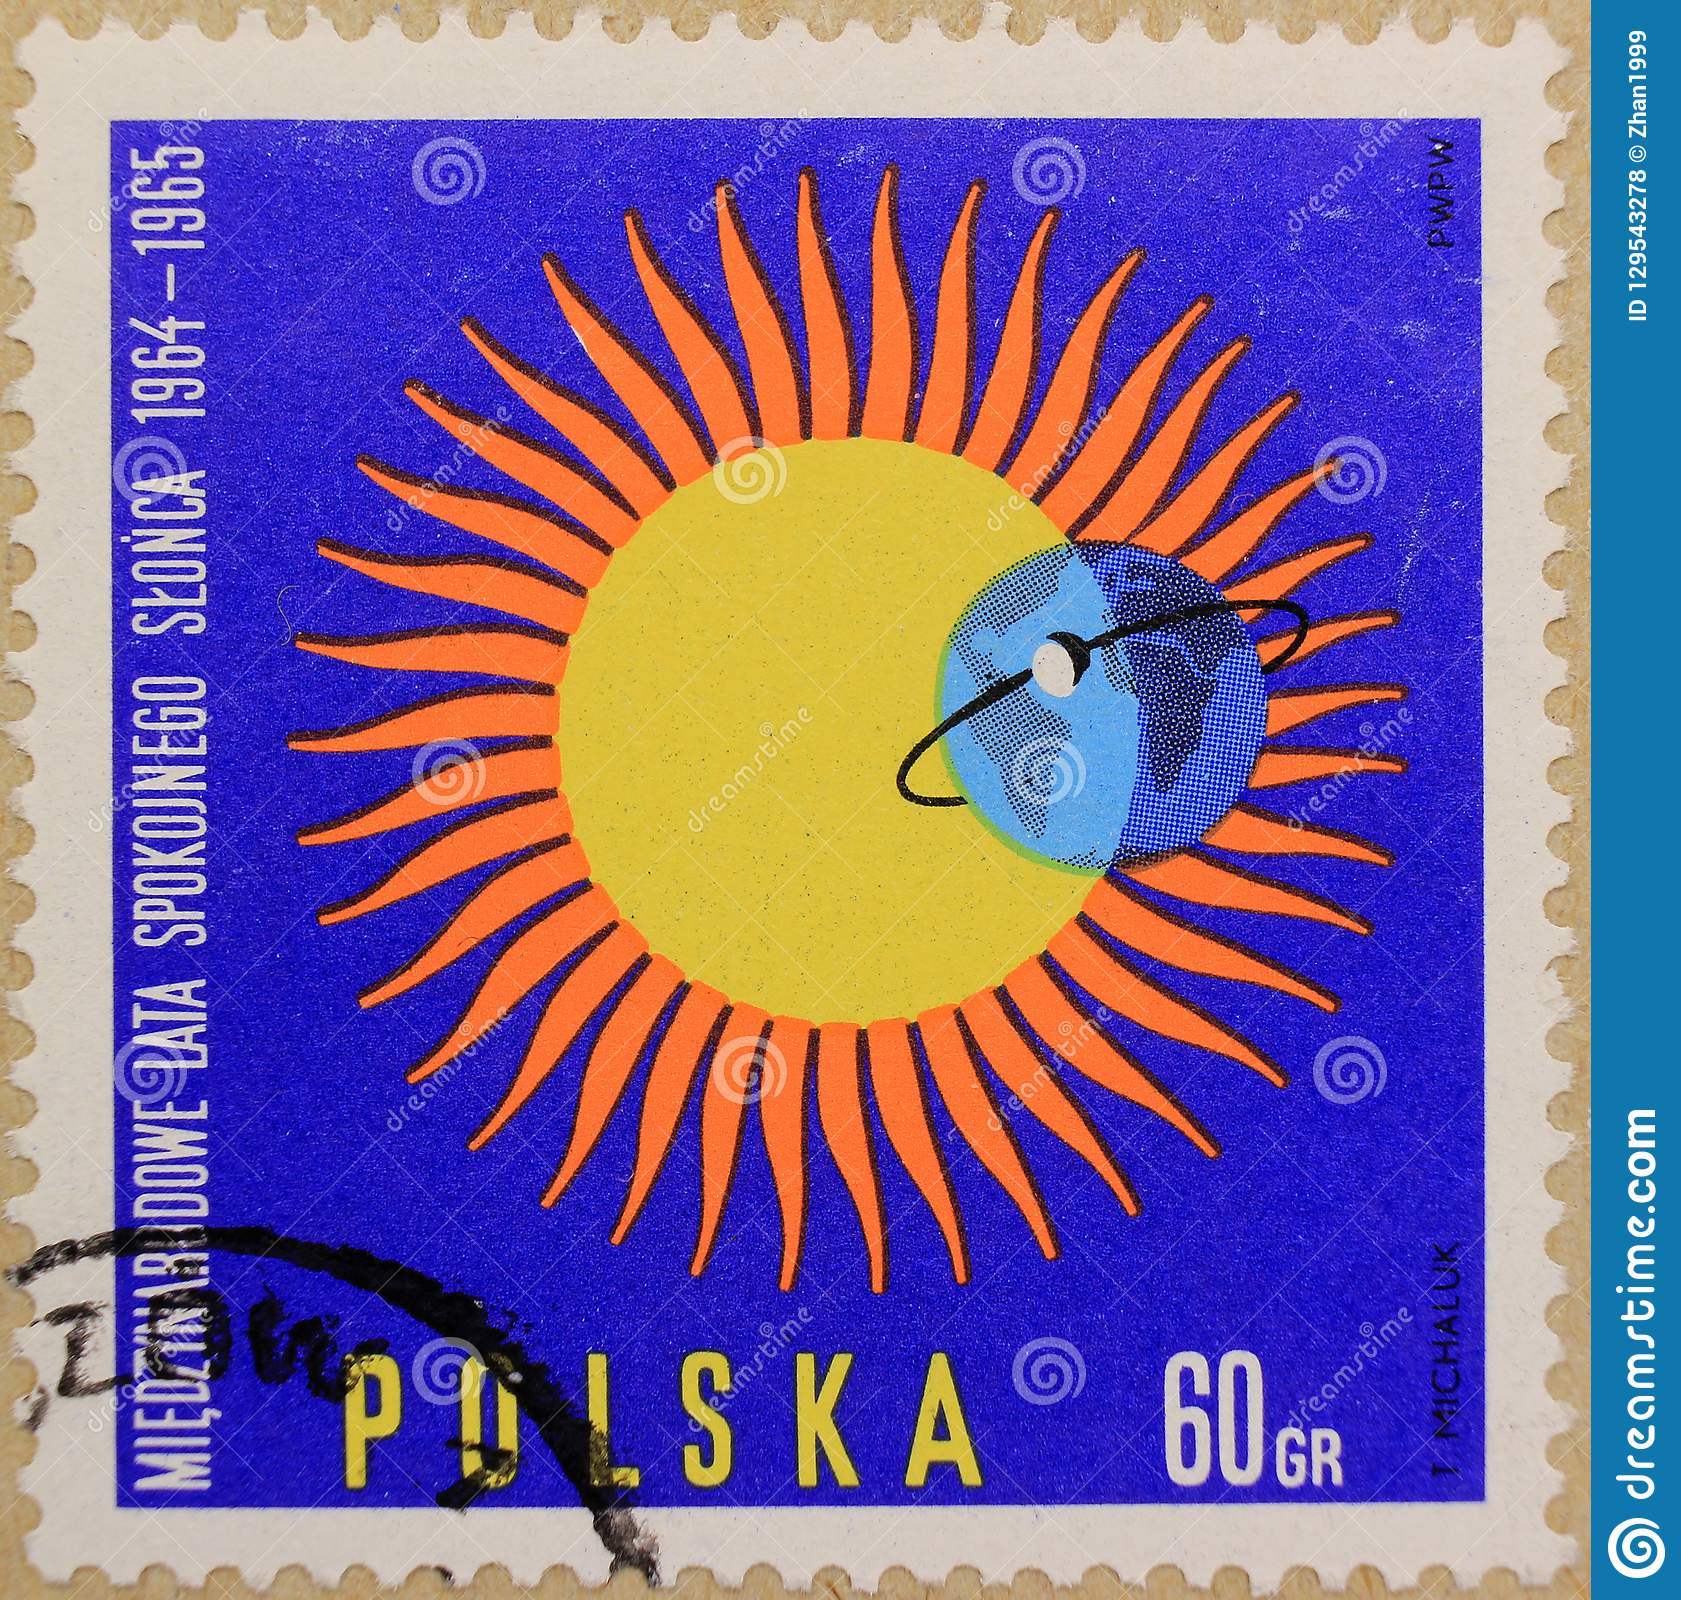 Postal stamp of Poland, dedicated to The Year of the Quiet Sun